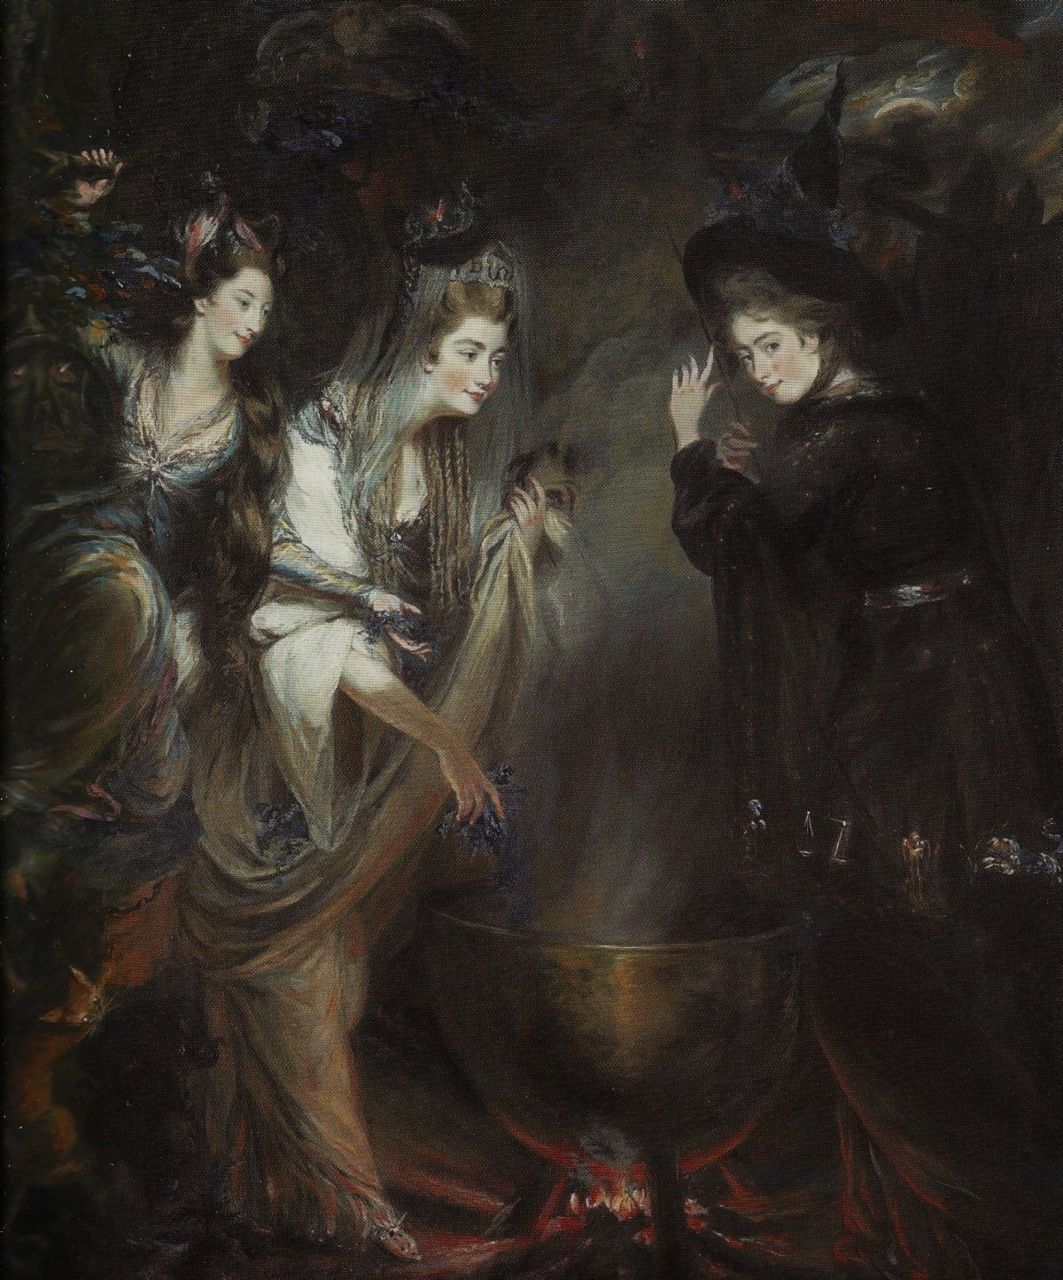 macbeth essays on the witches The witches of macbeth this research paper the witches of macbeth and other 64,000+ term papers, college essay examples and free essays are available now on reviewessayscom autor: review .